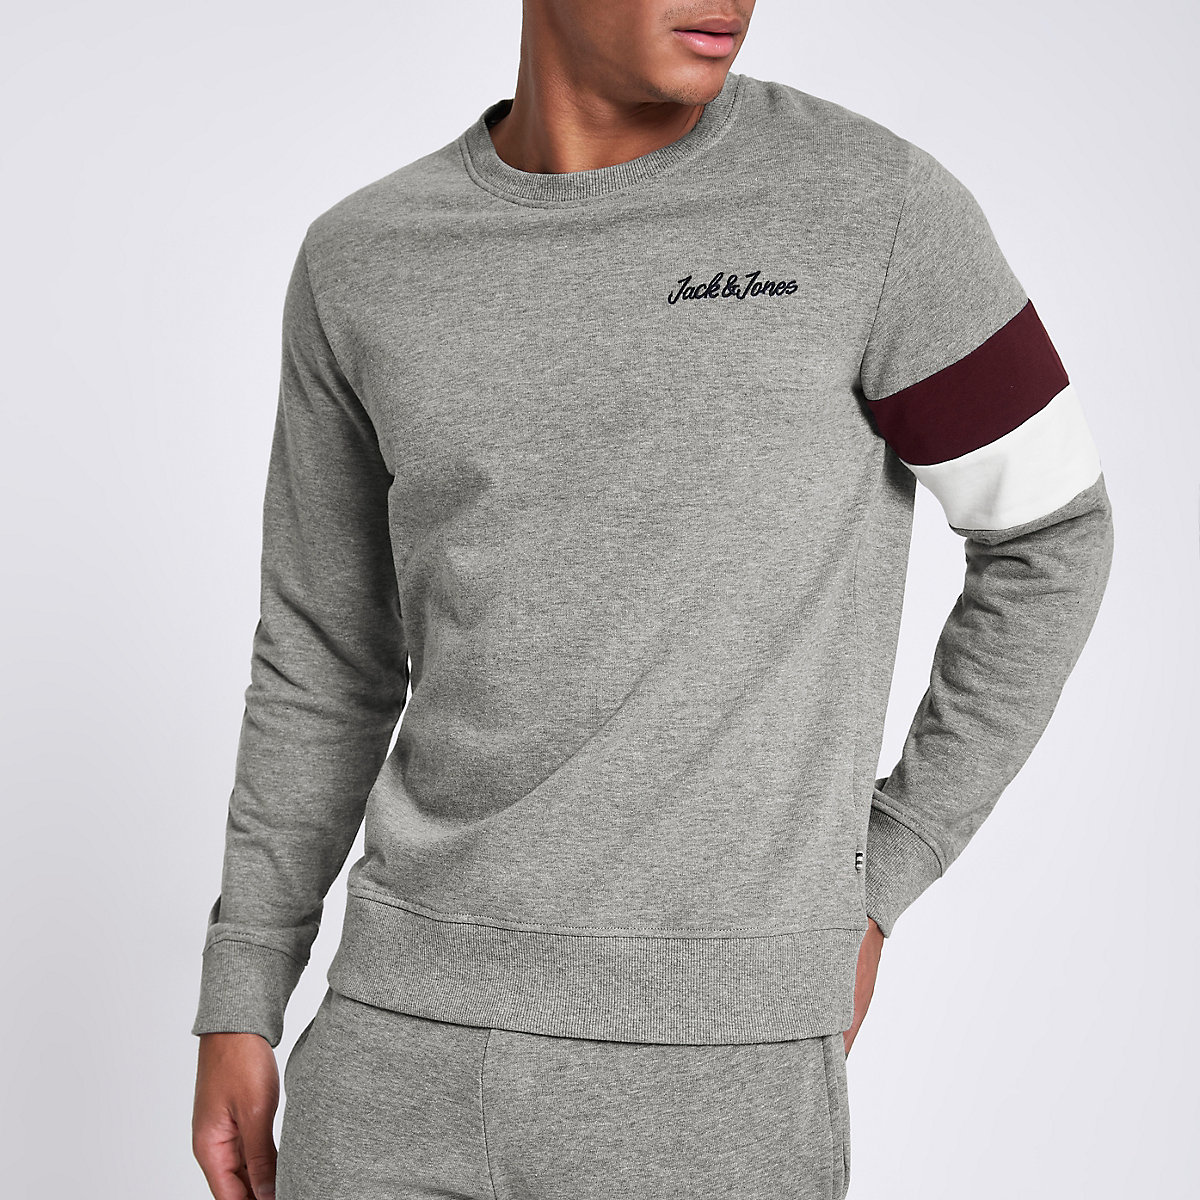 Jack & Jones Originals grey sweatshirt